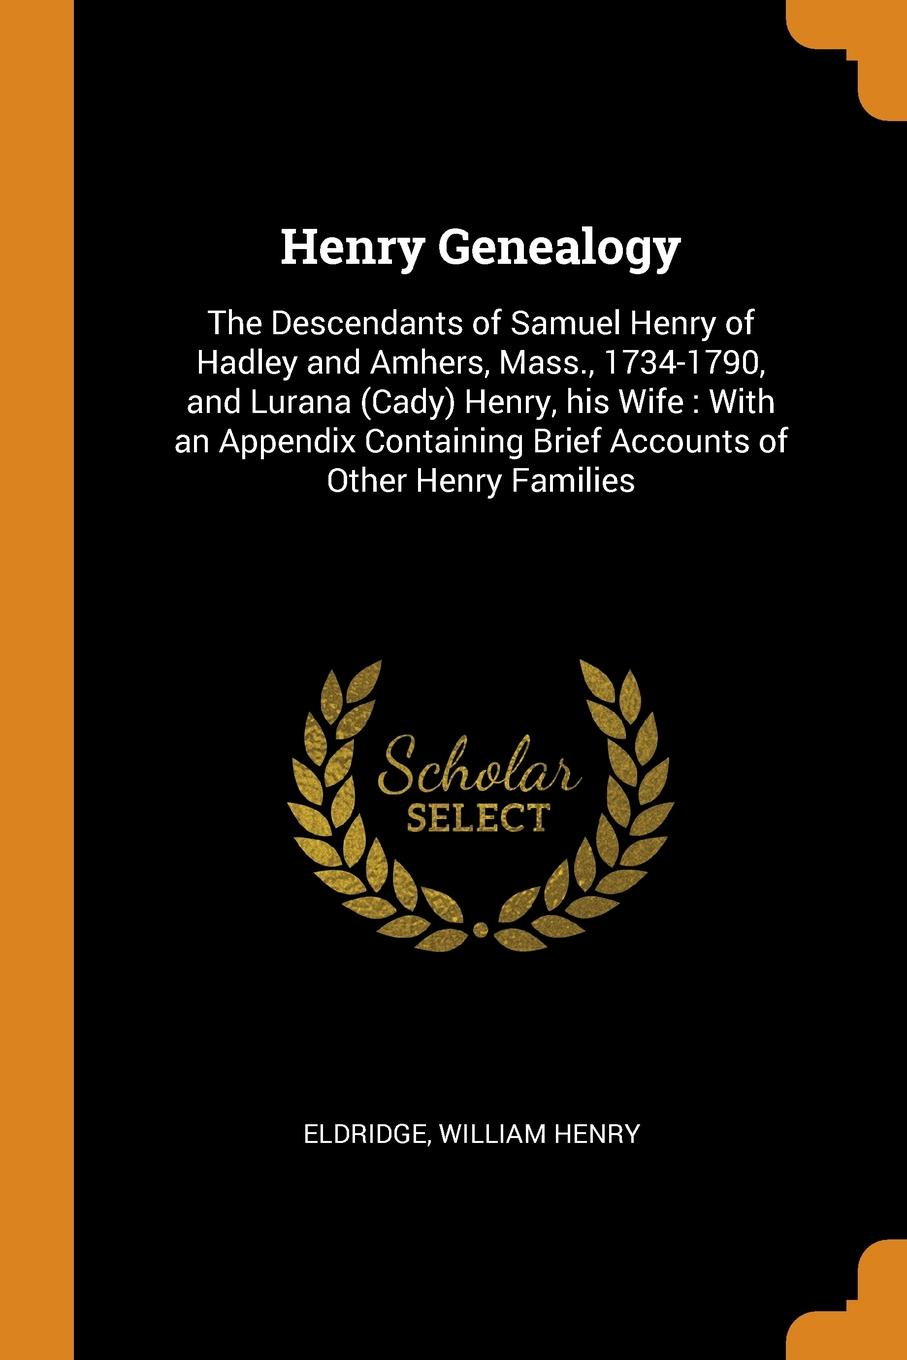 Eldridge William Henry Henry Genealogy. The Descendants of Samuel Henry of Hadley and Amhers, Mass., 1734-1790, and Lurana (Cady) Henry, his Wife : With an Appendix Containing Brief Accounts of Other Henry Families samuel orcutt henry tomlison and his descendants in america